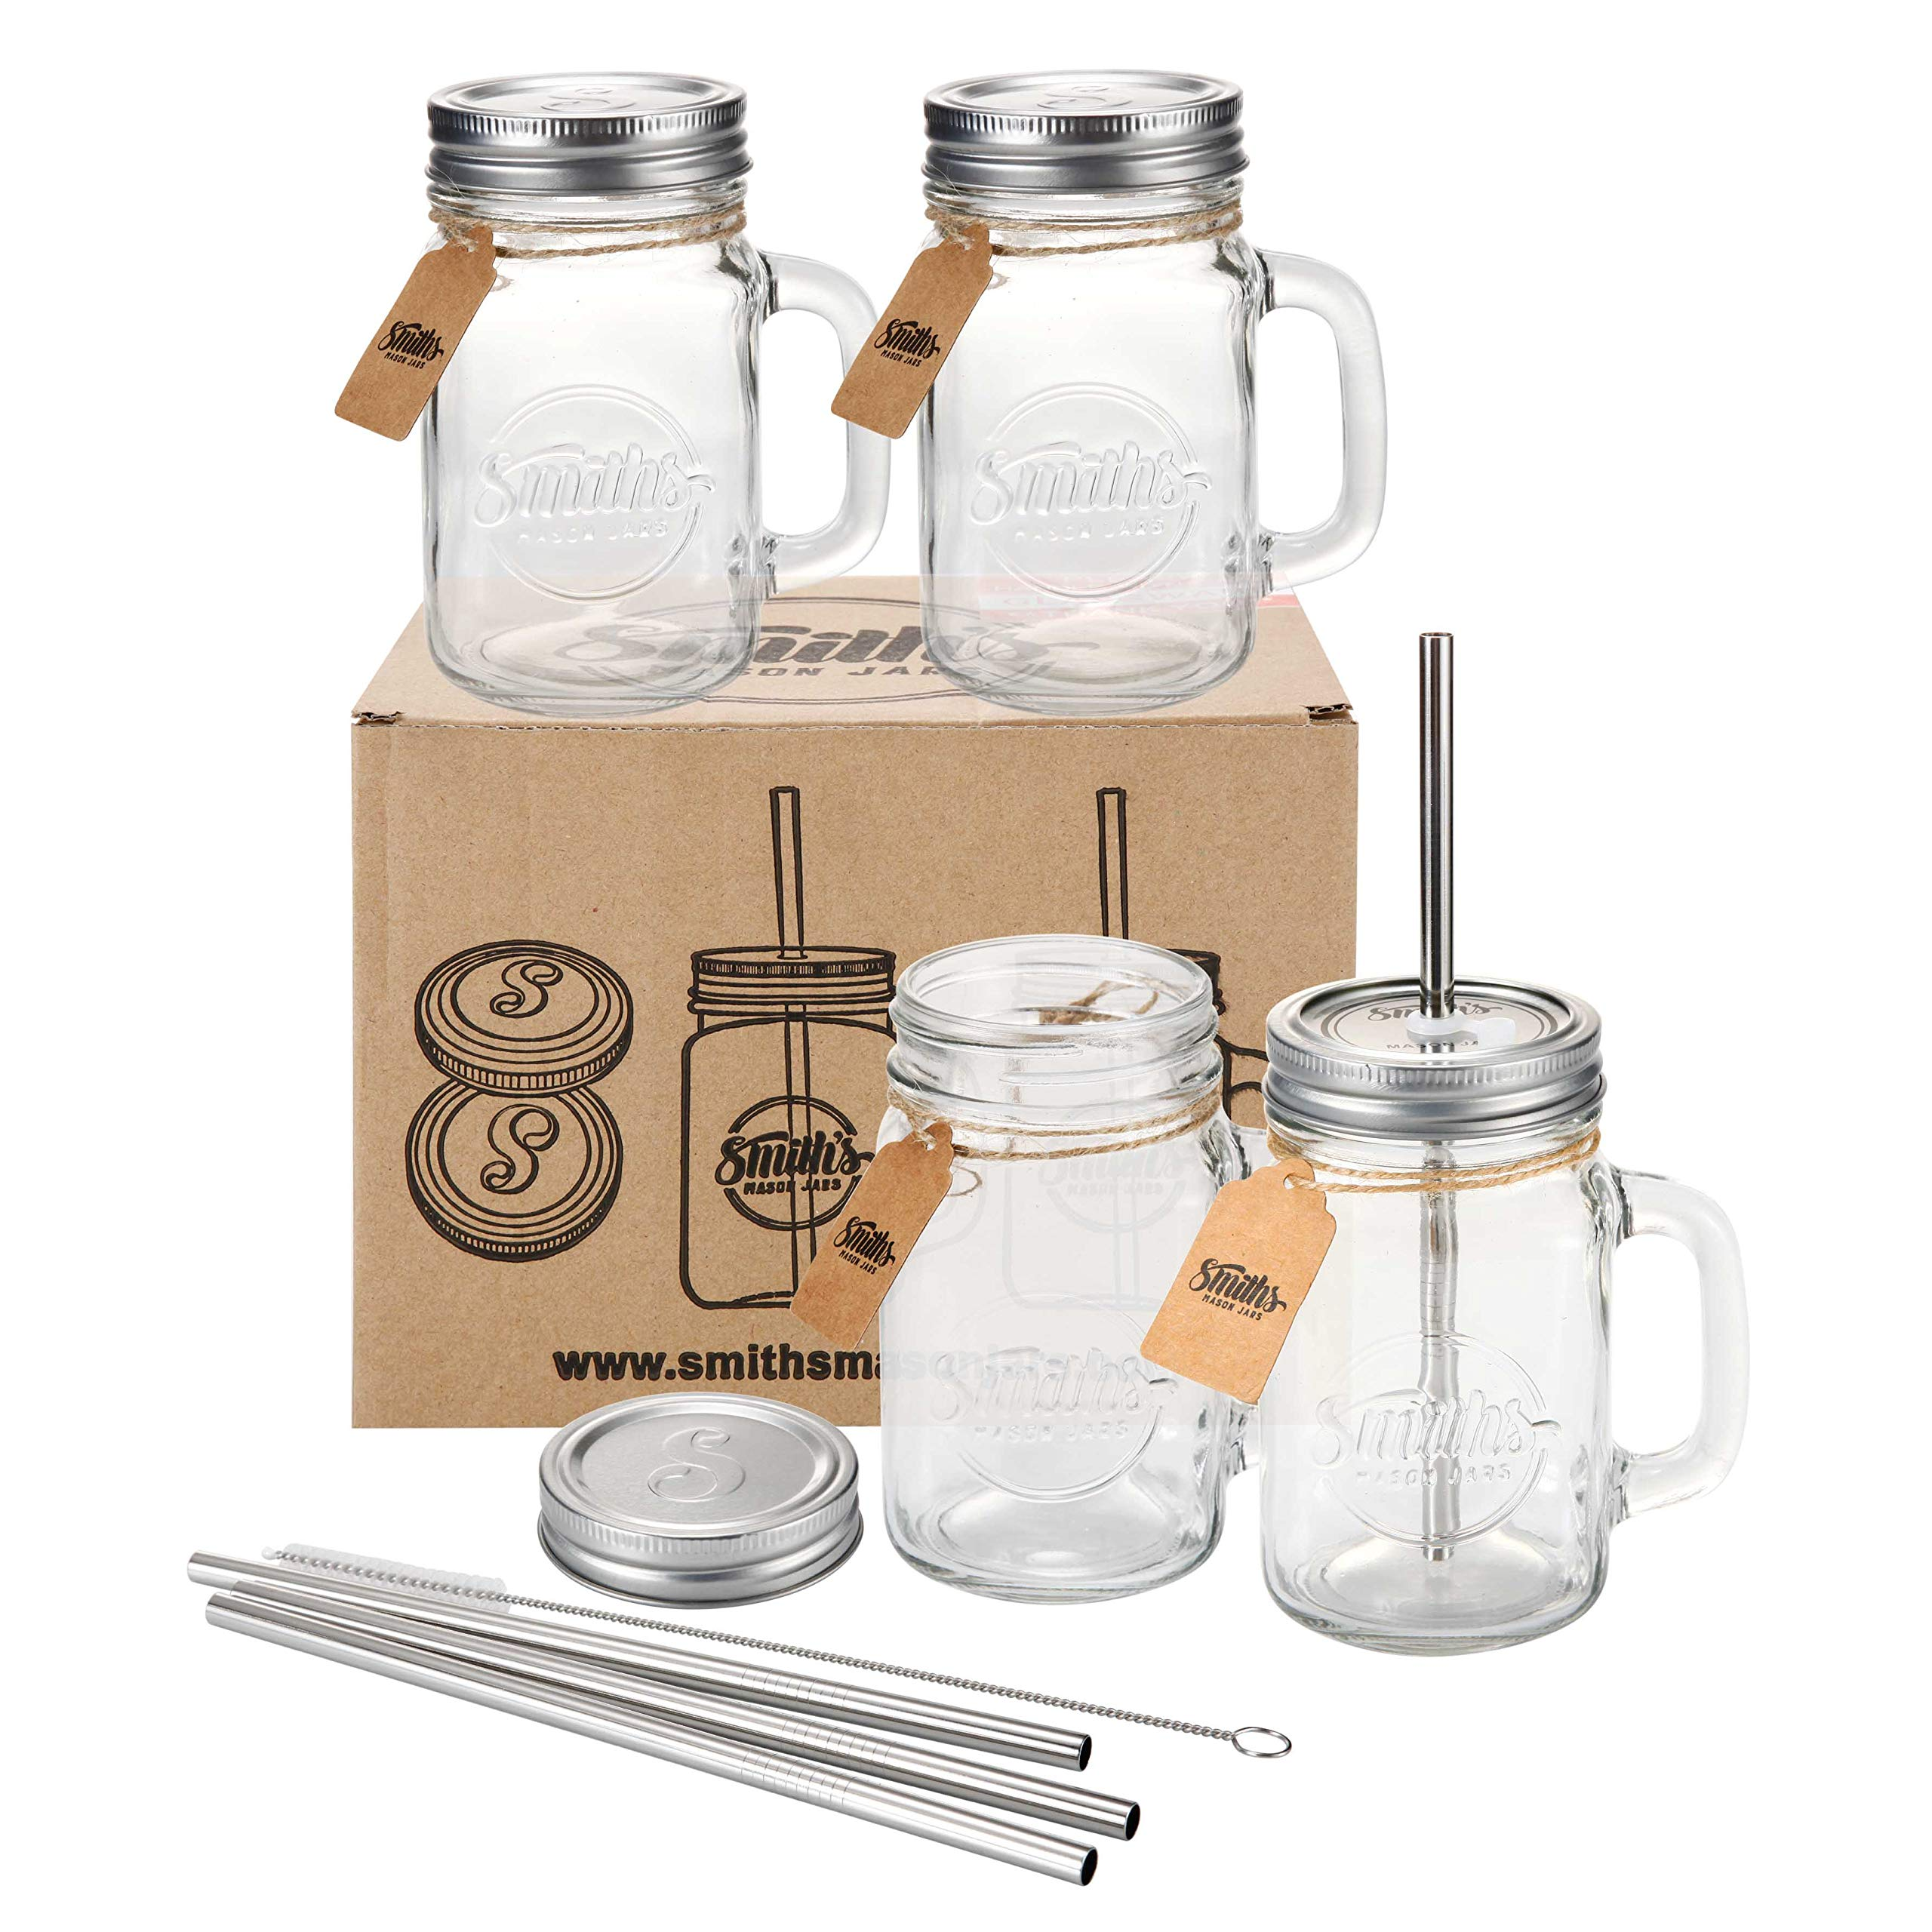 Smiths Mason Jar Set of Four Jars with Lids and Straws Also with Extra Set of 4 Lids Without Holes and Straw Cleaning Brush